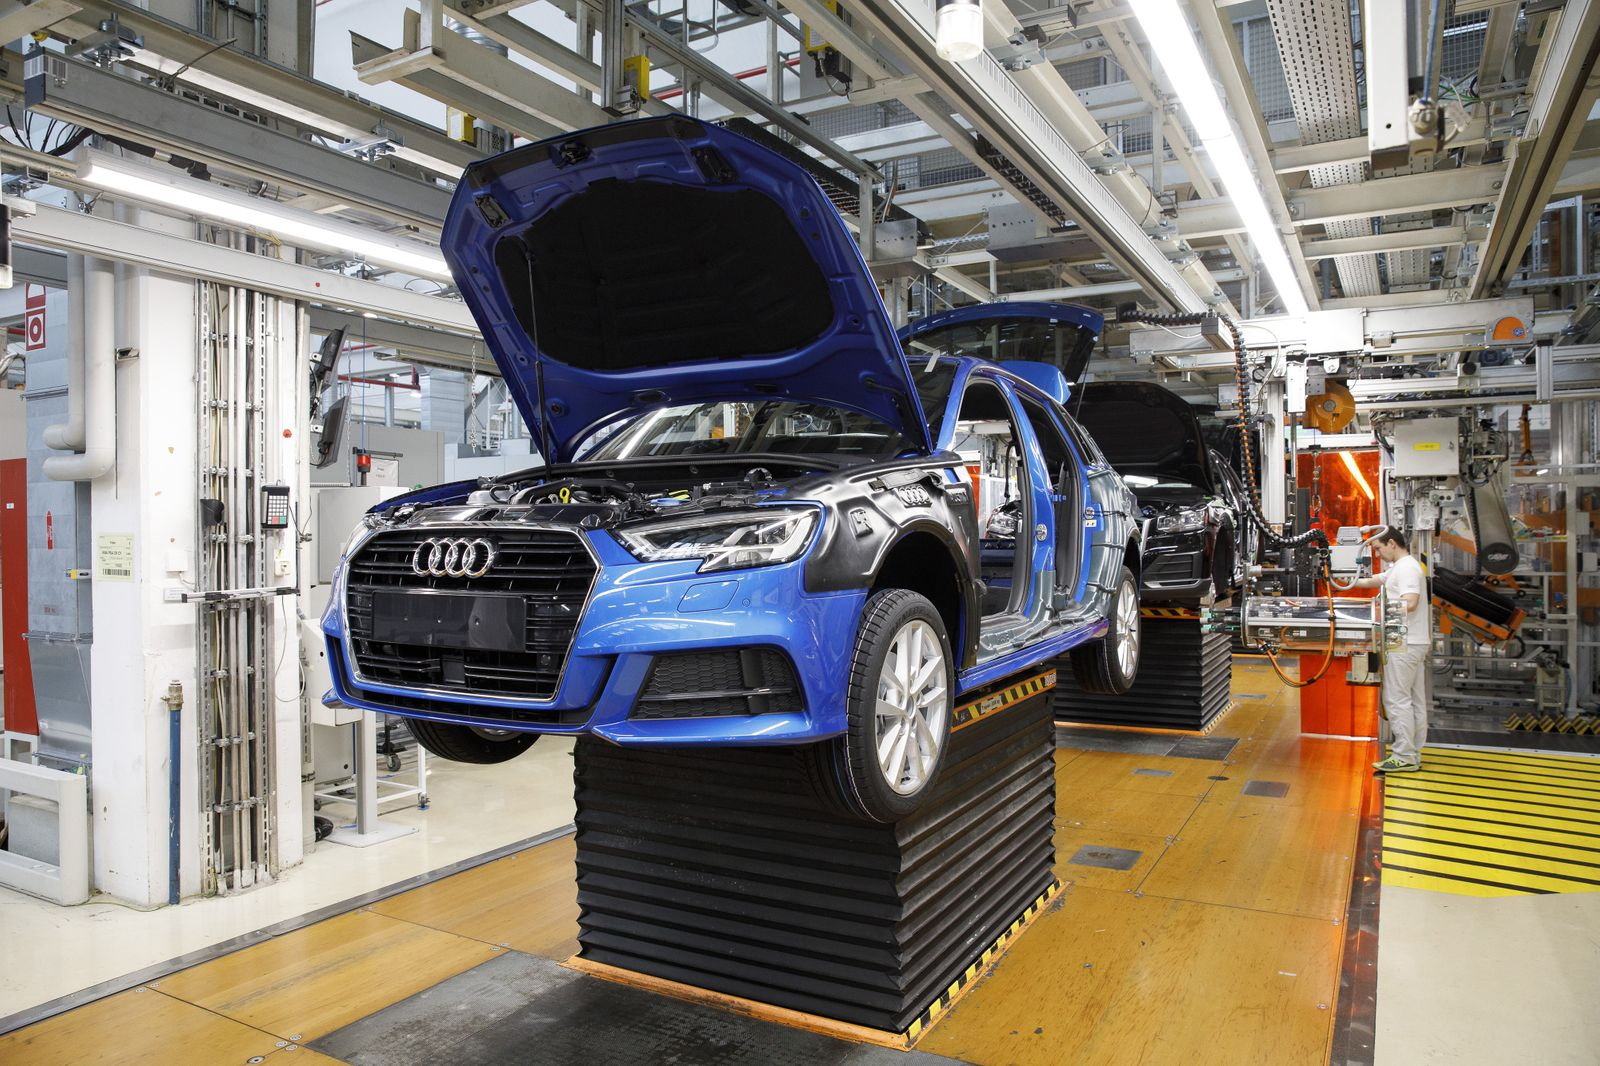 Audi AG Automobile Factory Tour Ahead Of Earnings